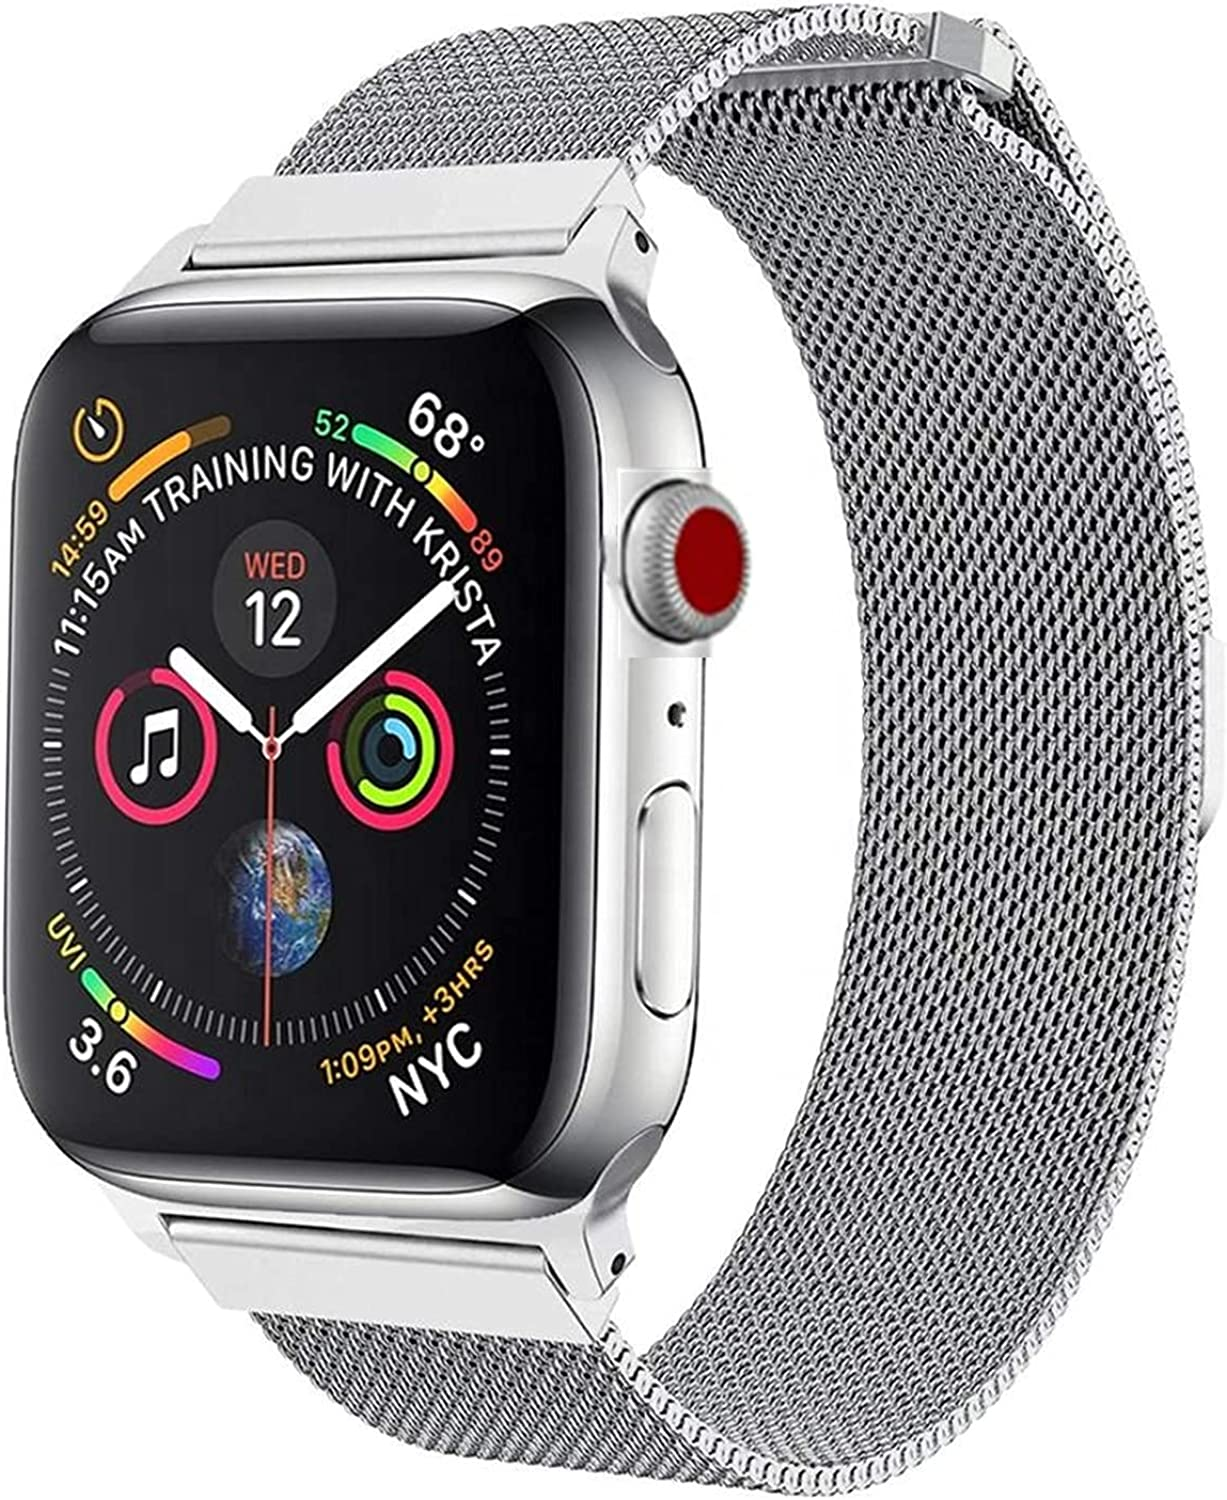 Baguard Magnetic Band Compatible with Apple Watch Band 38mm 40mm 41mm 42mm 44mm 45mm, Stainless Steel Mesh Strap with Adjustable Loop, Metal Wristband Compatible for iWatch SE Series 7 6 5 4 3 2 1 for Women Men